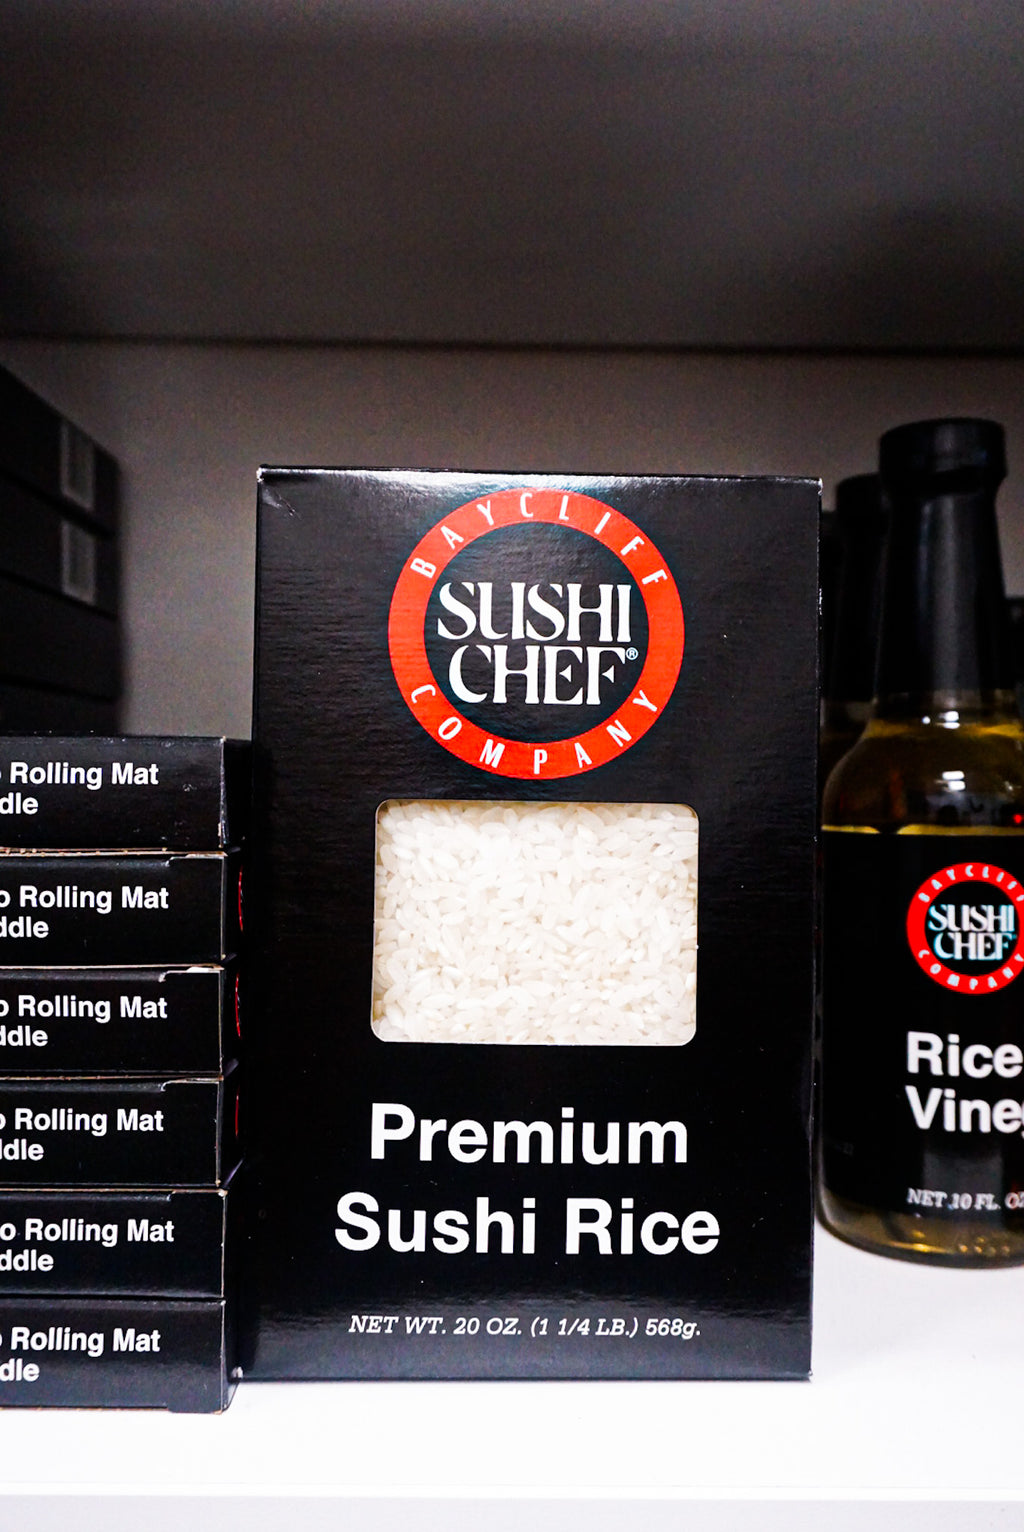 Sushi Chef Sushi Rice - New Canaan